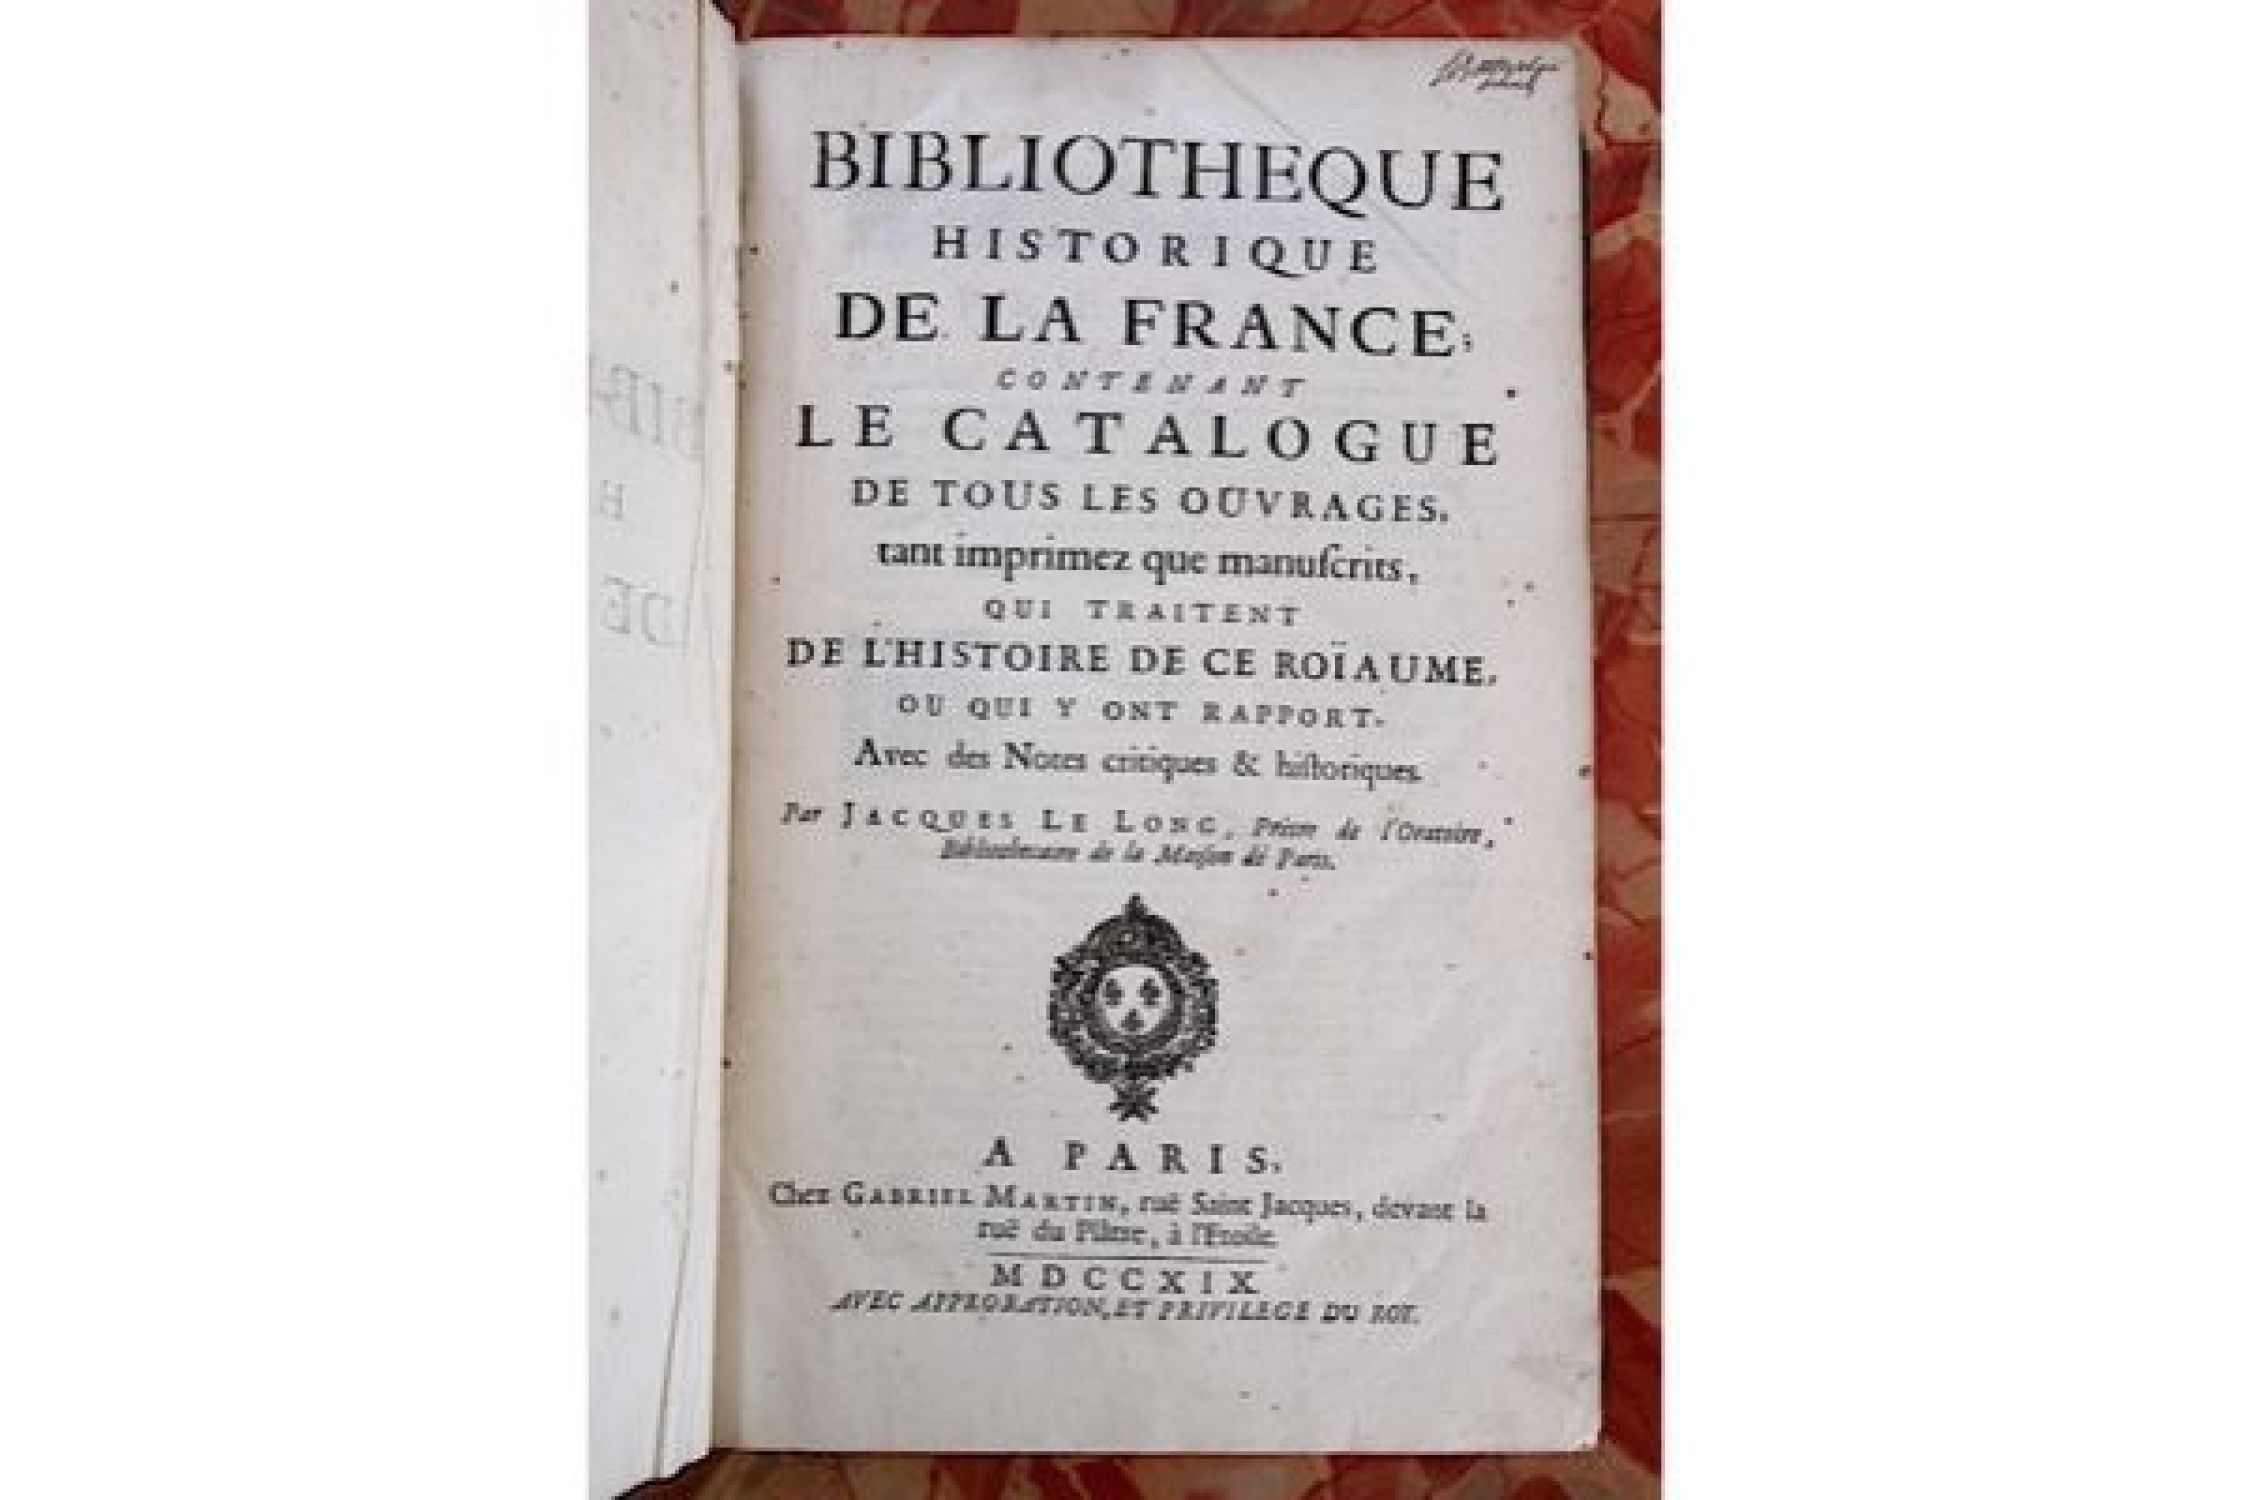 lelong bibliotheque historique de la france contenant le catalogue de tous les ouvrages. Black Bedroom Furniture Sets. Home Design Ideas